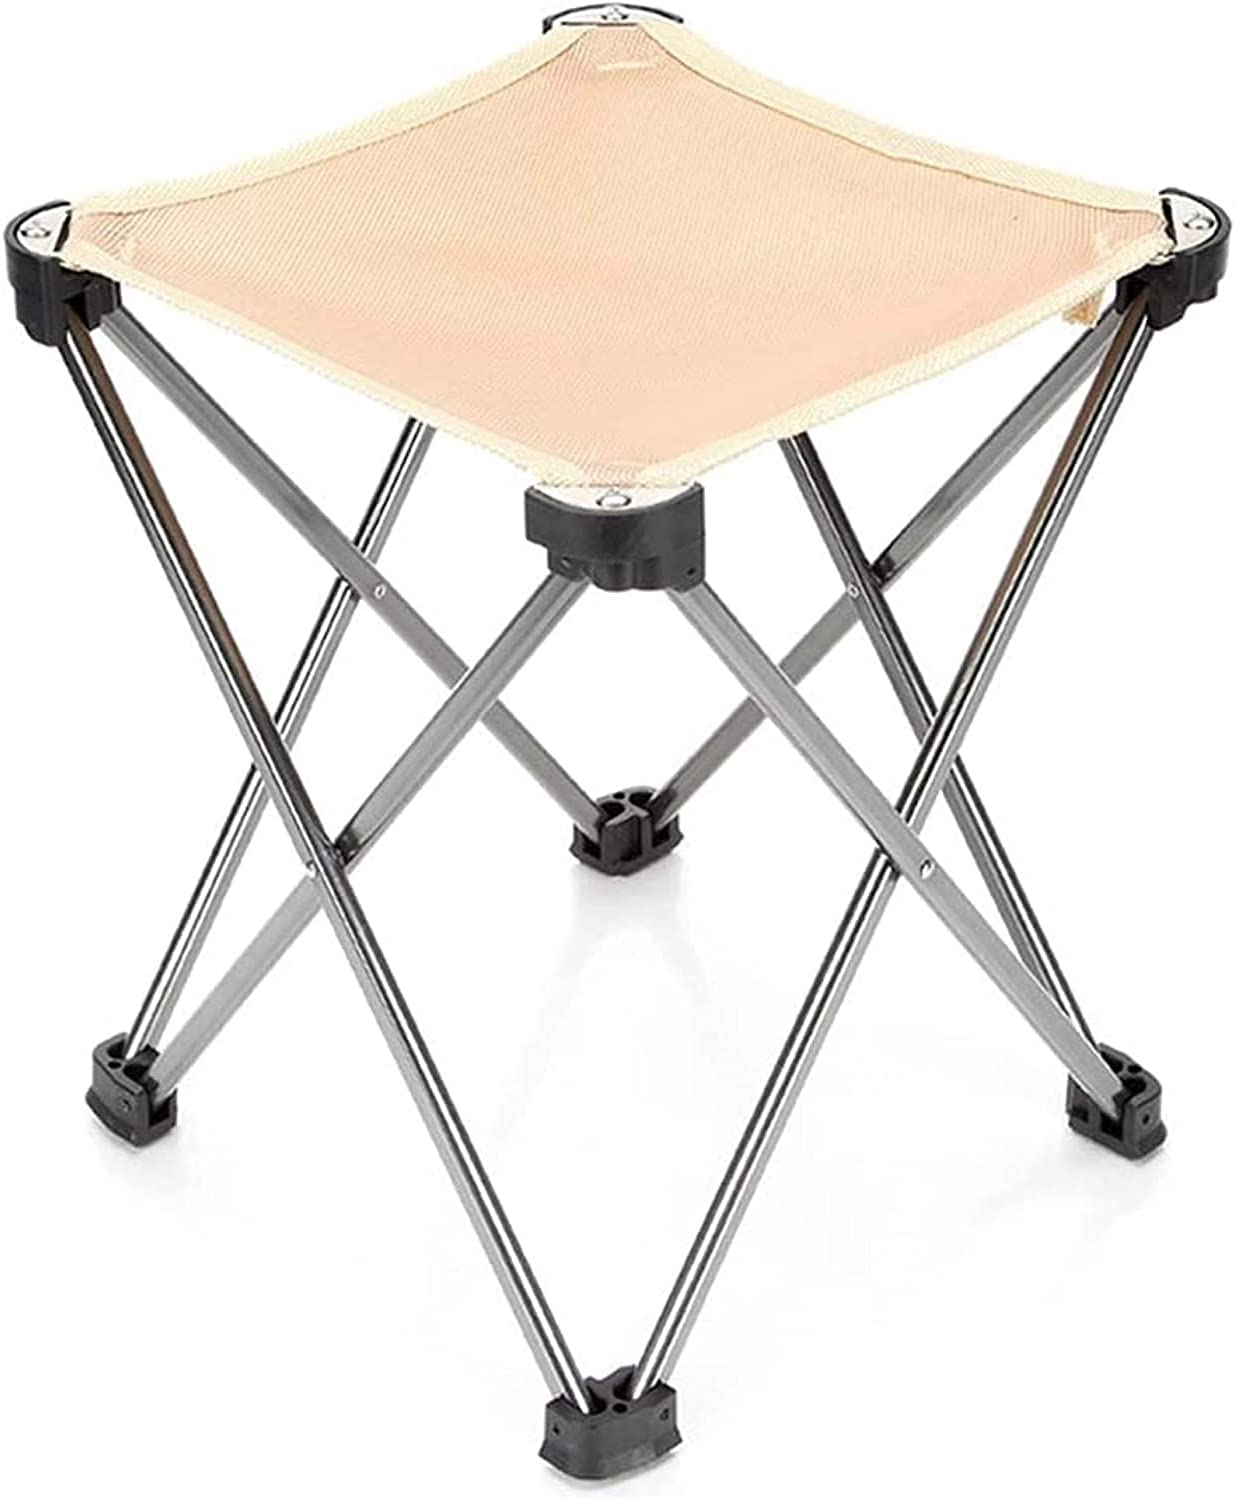 Large special price YGCBL Camping Chair Alumin Fort Worth Mall Folding Lightweight